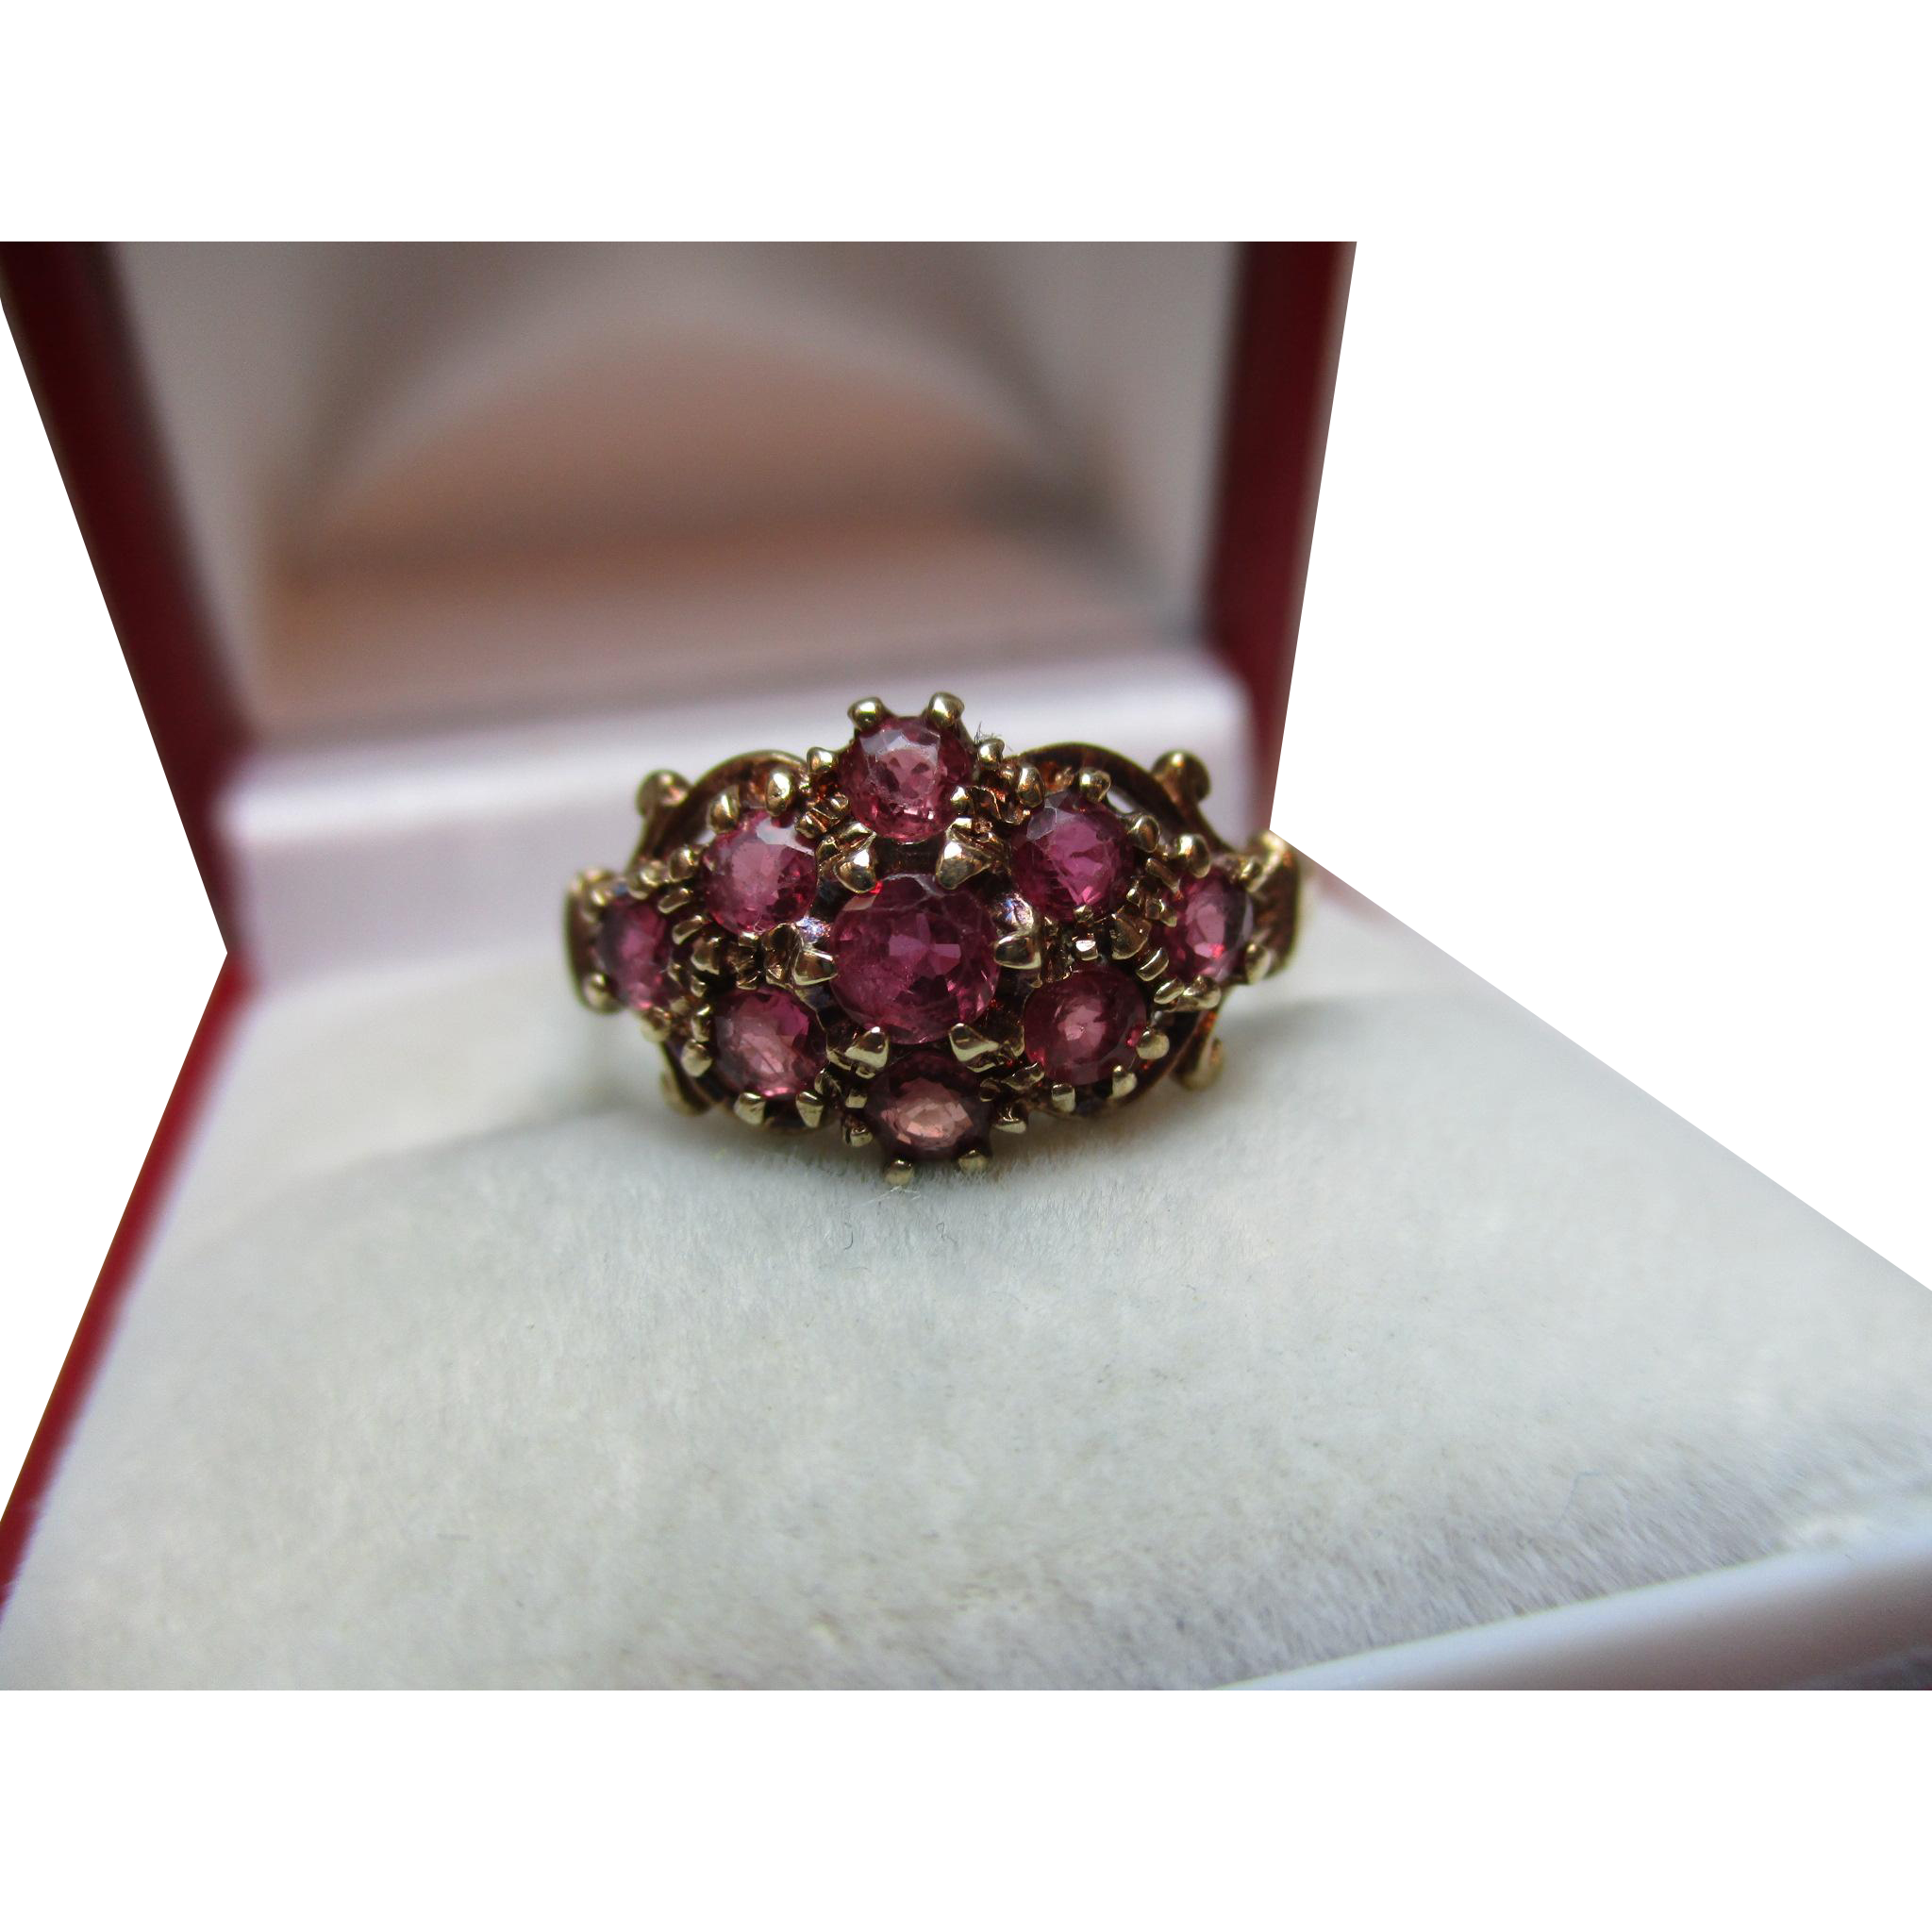 Decorative Vintage{Edinburgh 1991} 9ct Solid Gold Ruby Gemstone Cluster Ring{0.7Ct Ruby Weight}